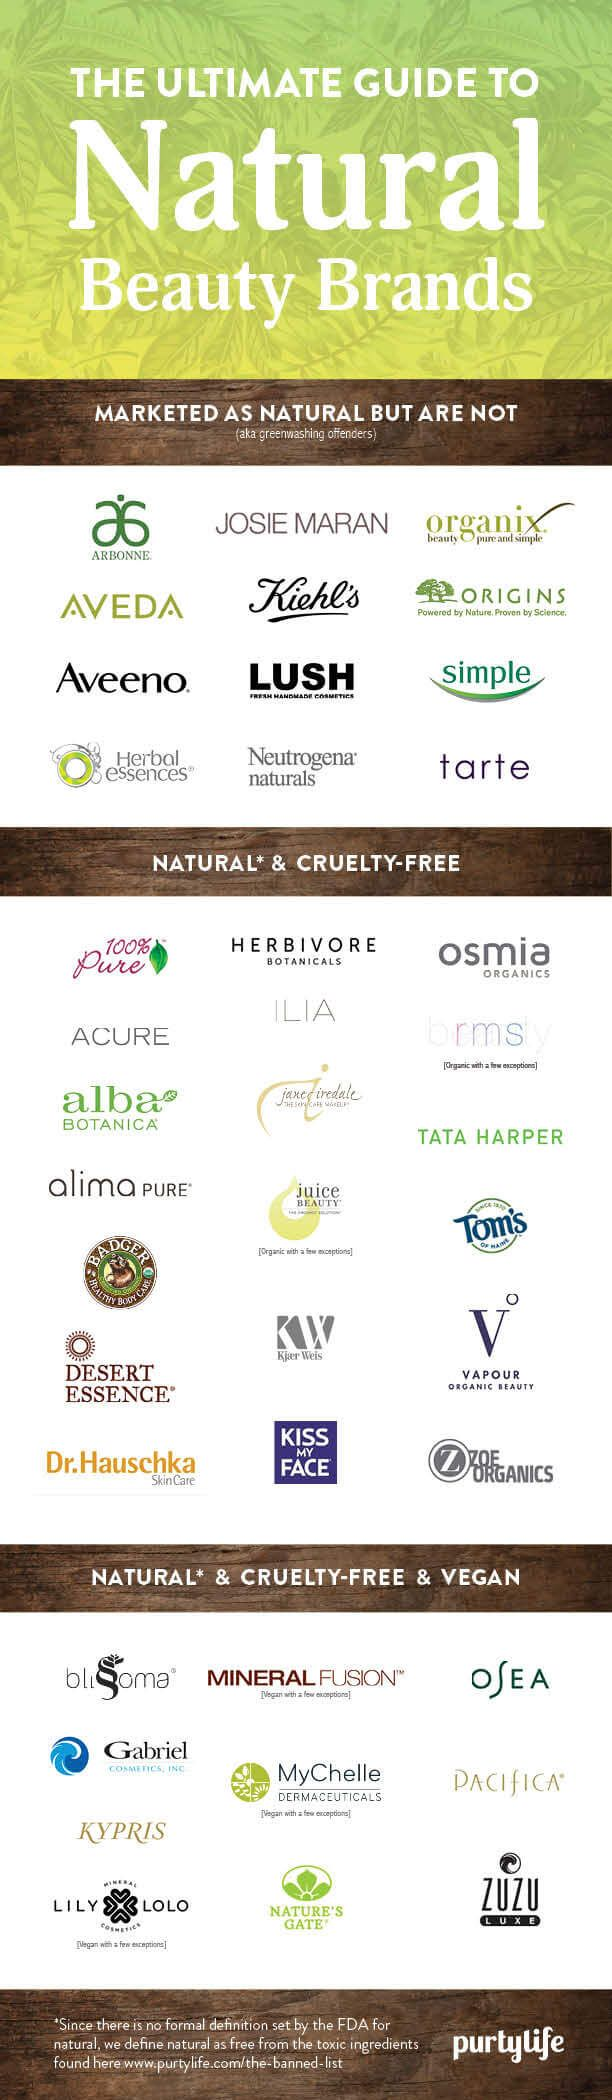 The Ultimate Guide to the Natural, Organic and Vegan Beauty Brands | Discover Non-Toxic, Chemical-Free Makeup & Skincare | https://www.purtylife.com/the-banned-list